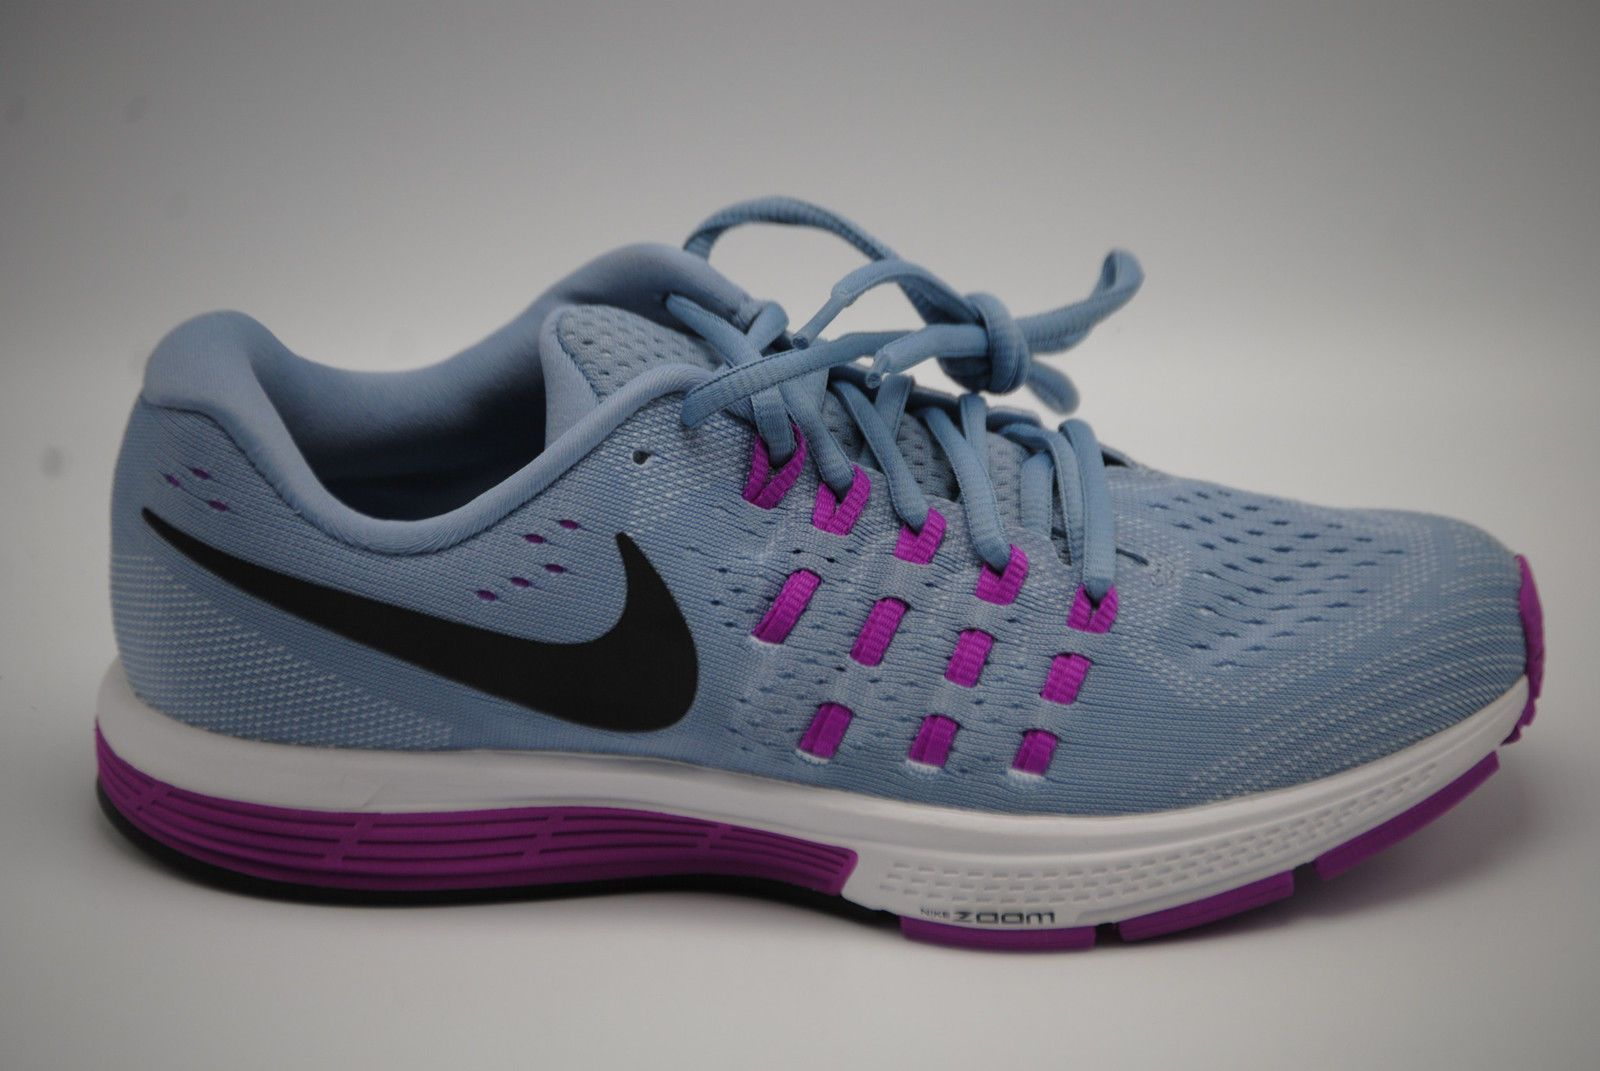 check out 1c9df 54403 Nike Air Zoom Vomero 11 Women S Running Shoes 818100 405 Multiple Sizes